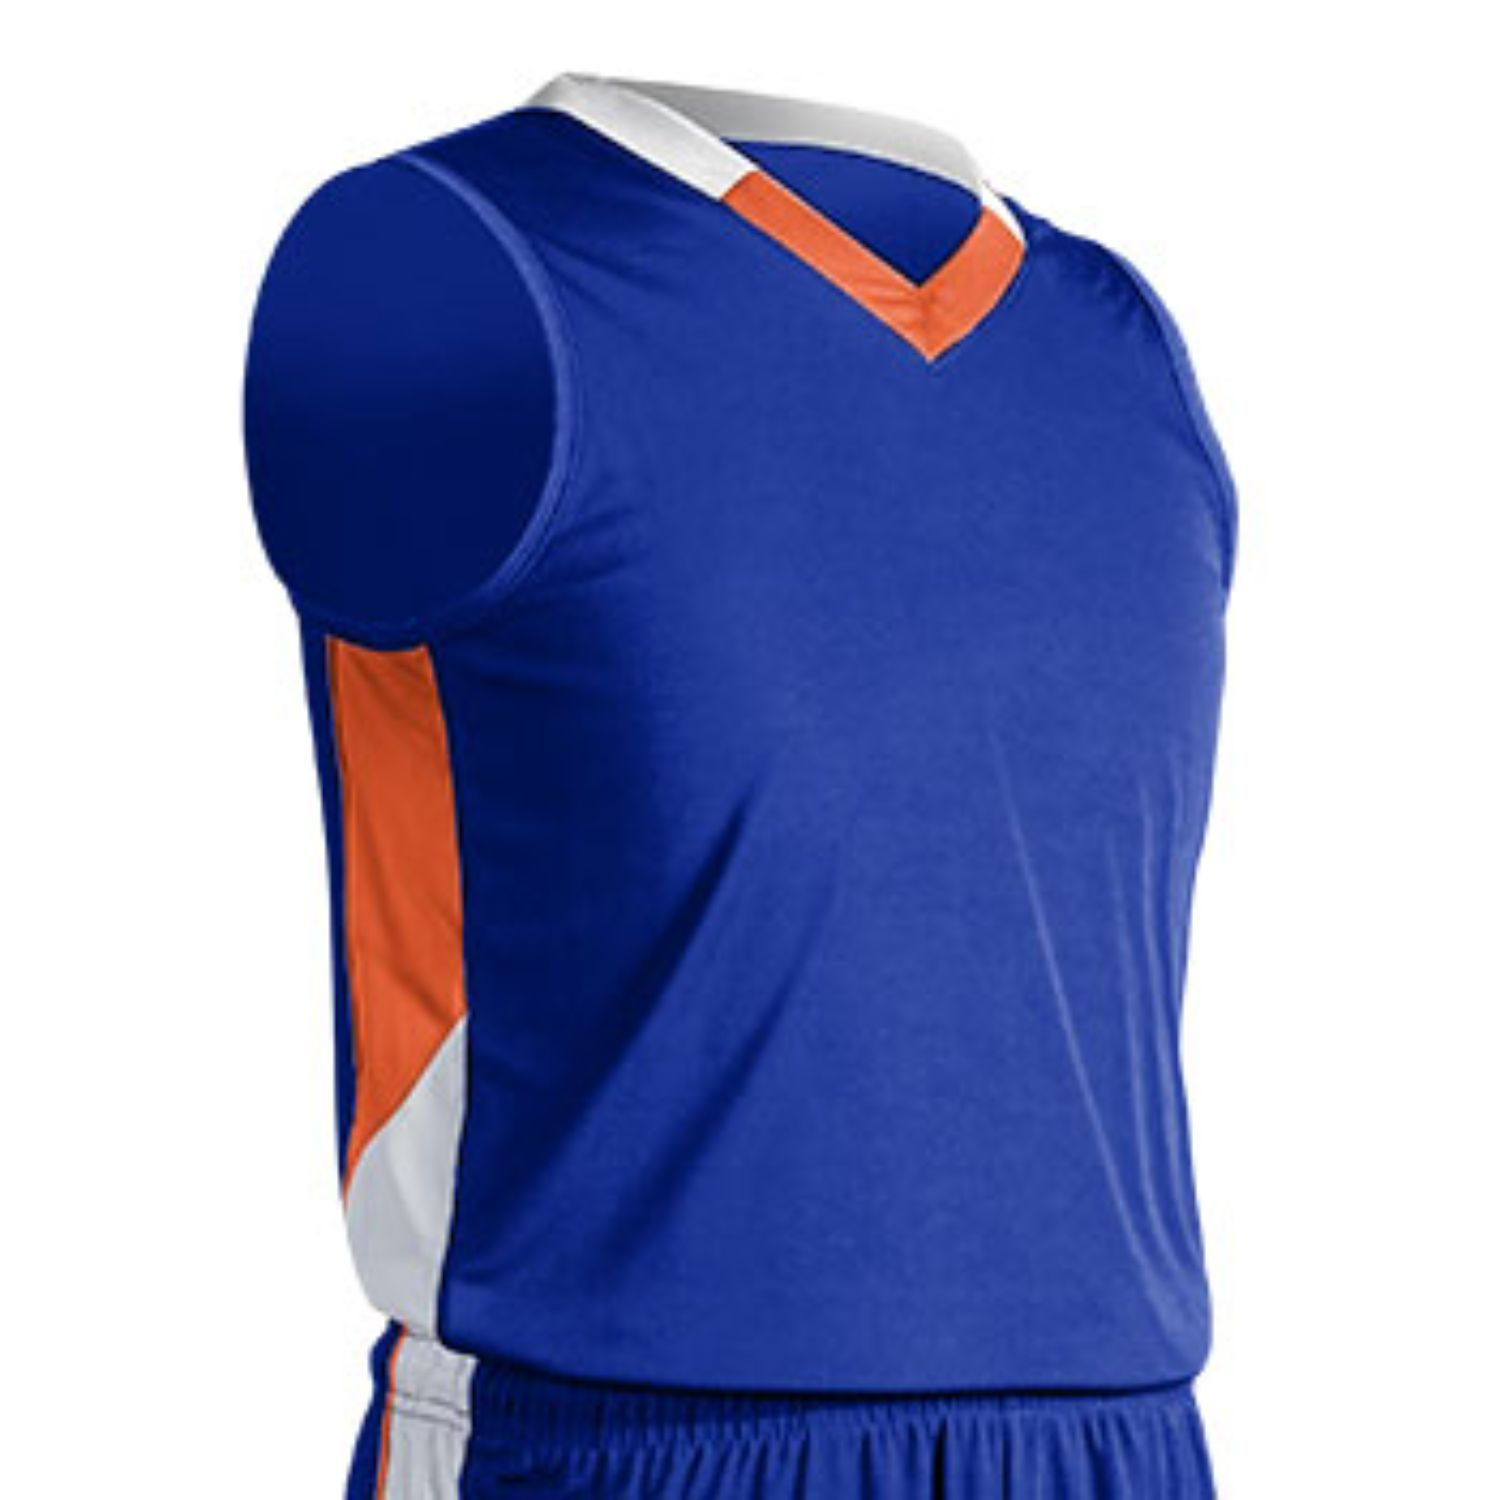 Champro Youth Rebel Basketball Jersey Roy ORG Wht Small